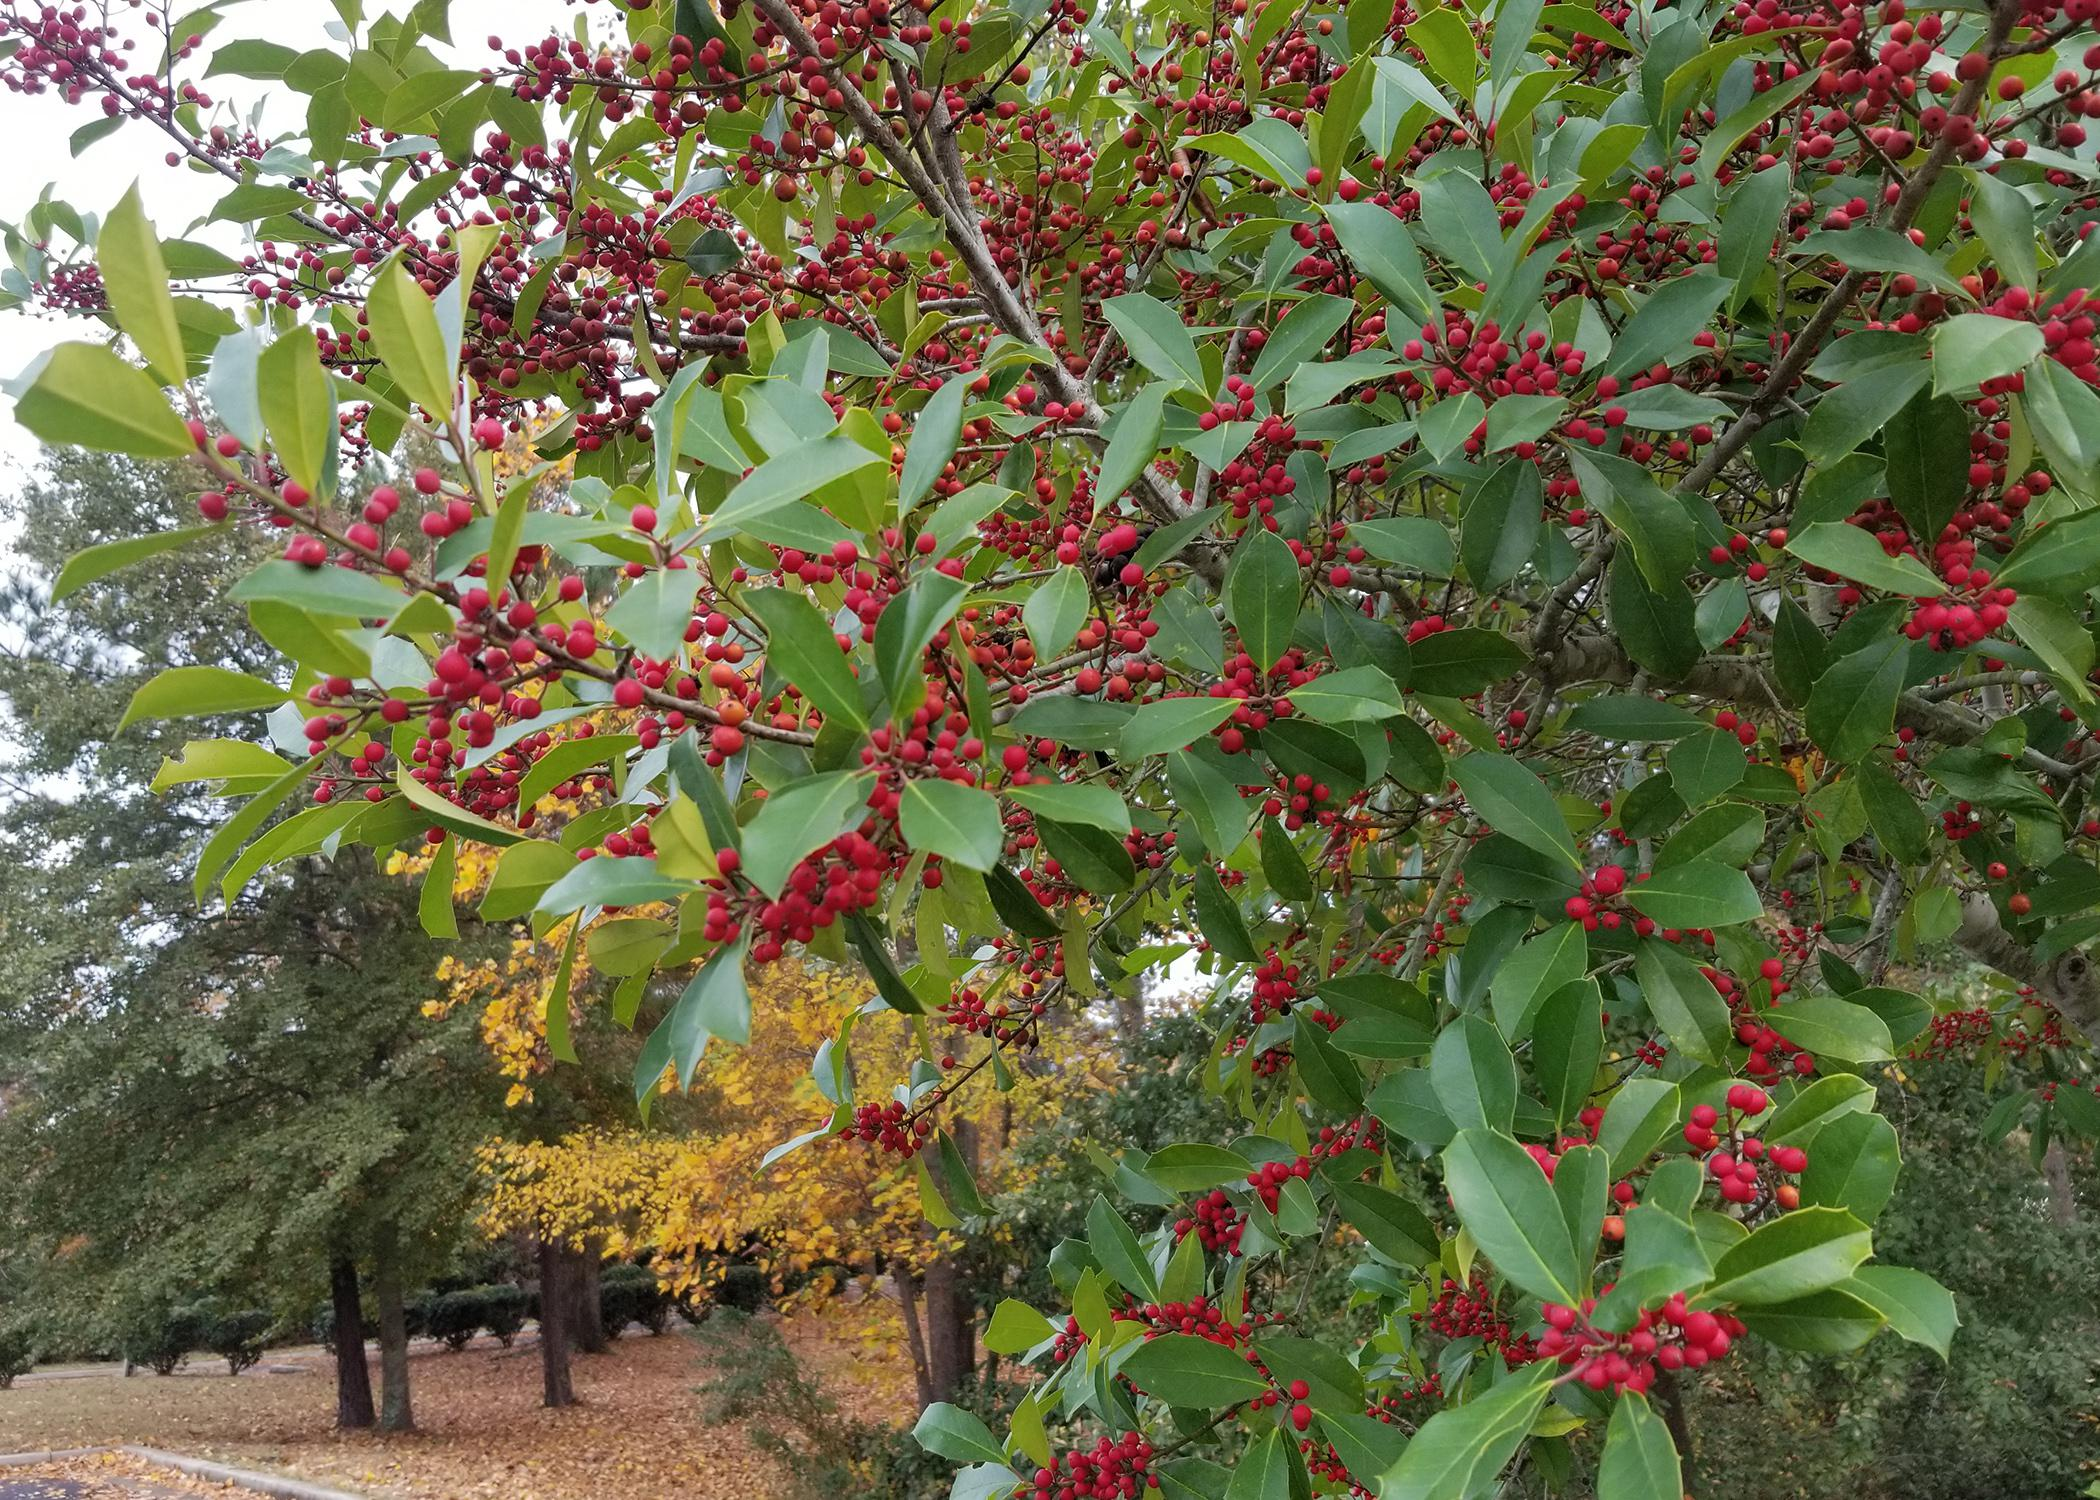 A branch with green leaves and dozens of clusters of red berries is in the foreground of an outdoor parking area.